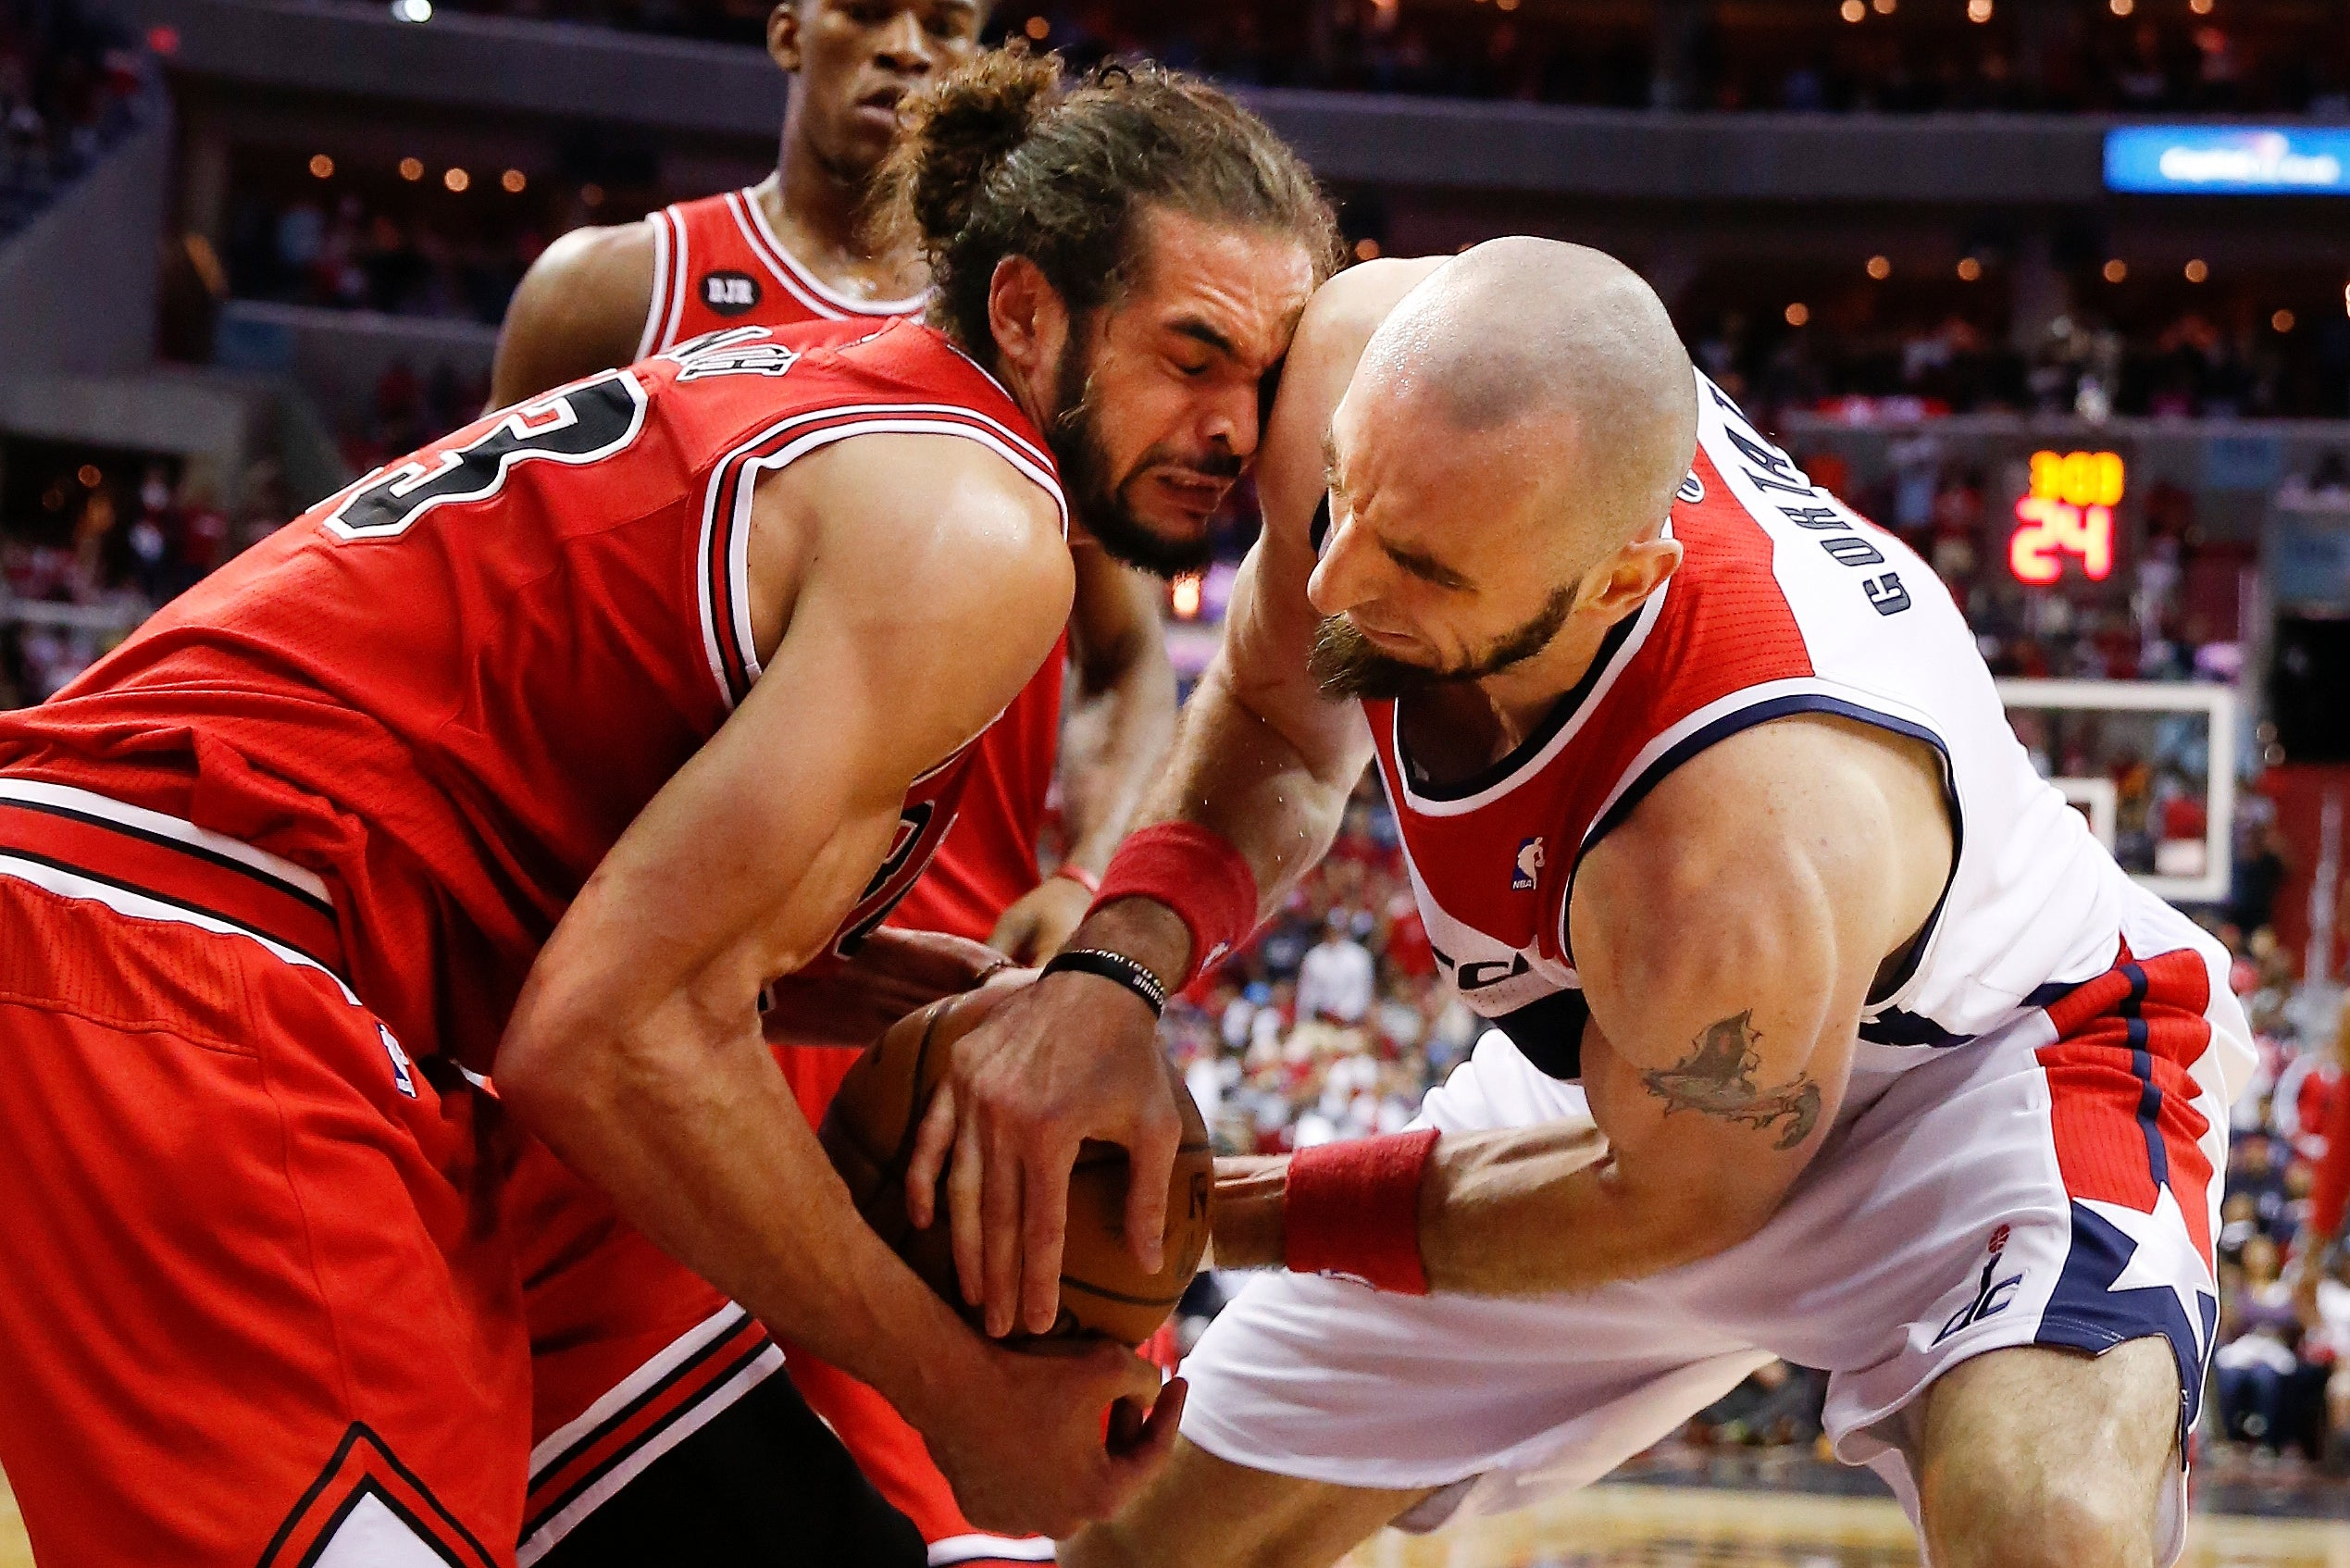 [Bulls center Joakim Noah and Wizards center Marcin Gortat batt…